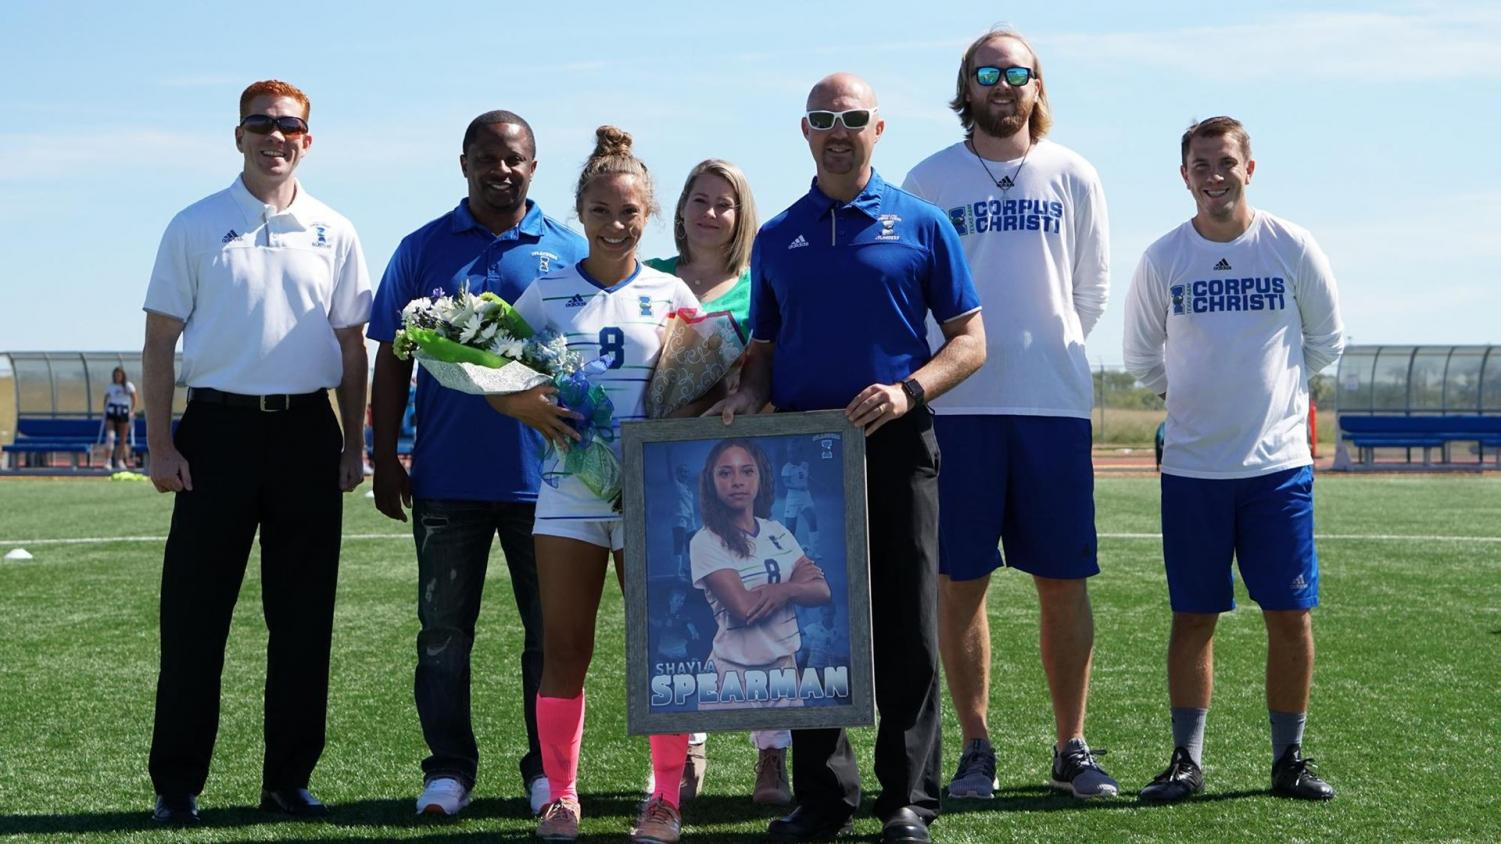 Photo courtesy of Islander Athletics - Senior defender Shayla Spearman seen being recognized on senior day on Oct. 27 against McNeese by athletic faculty and coaching staff.